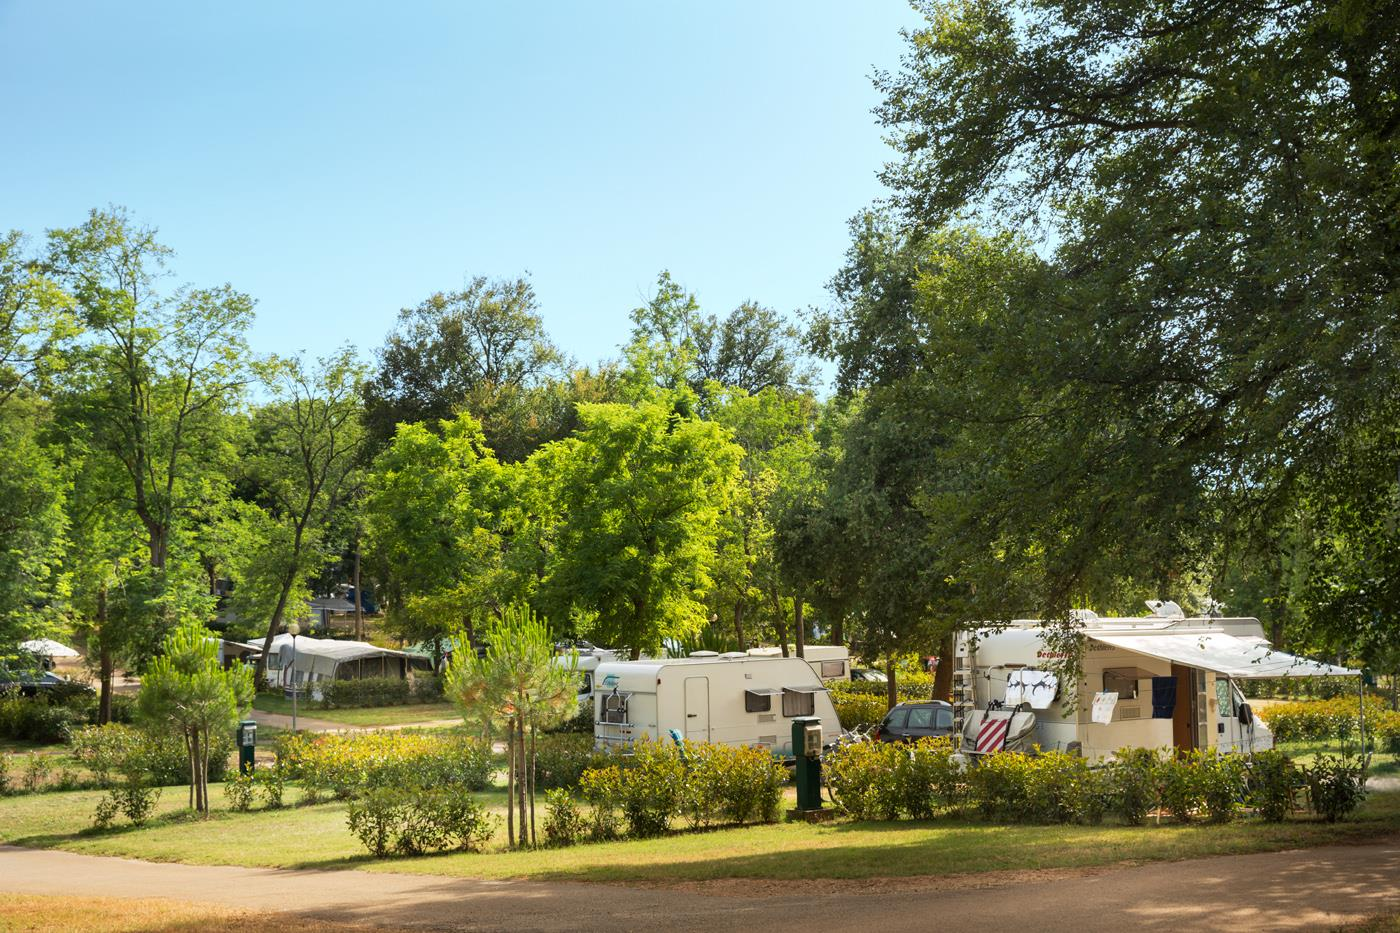 Emplacement - Emplacement Comfort - Aminess Maravea Camping Resort